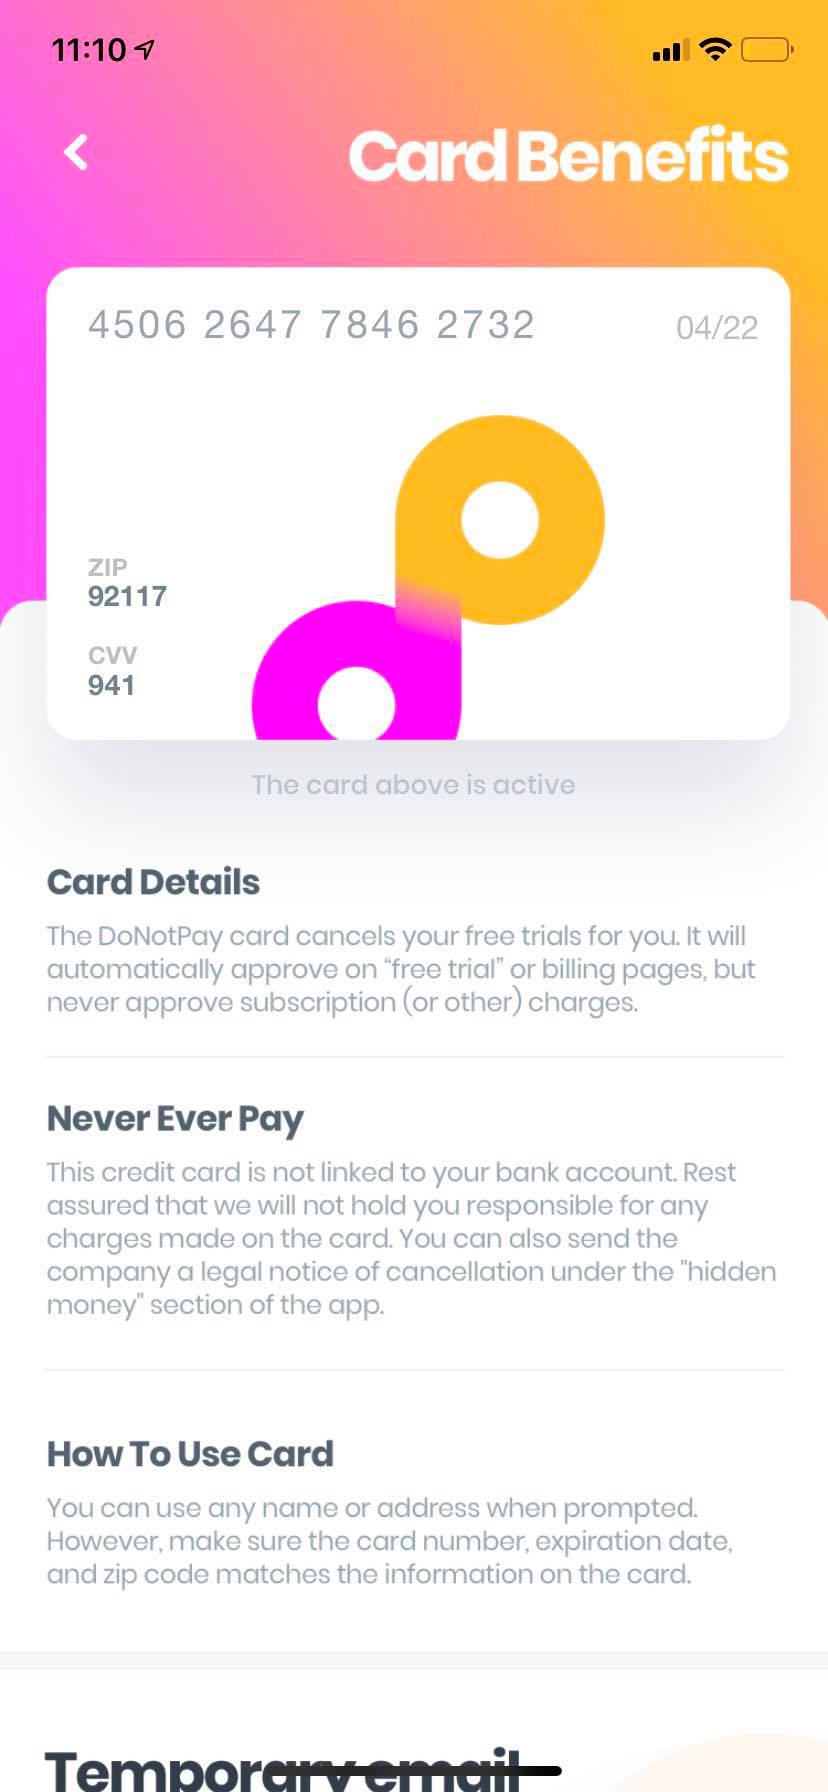 This App Uses a Burner Credit Card to Automatically Cancel Free